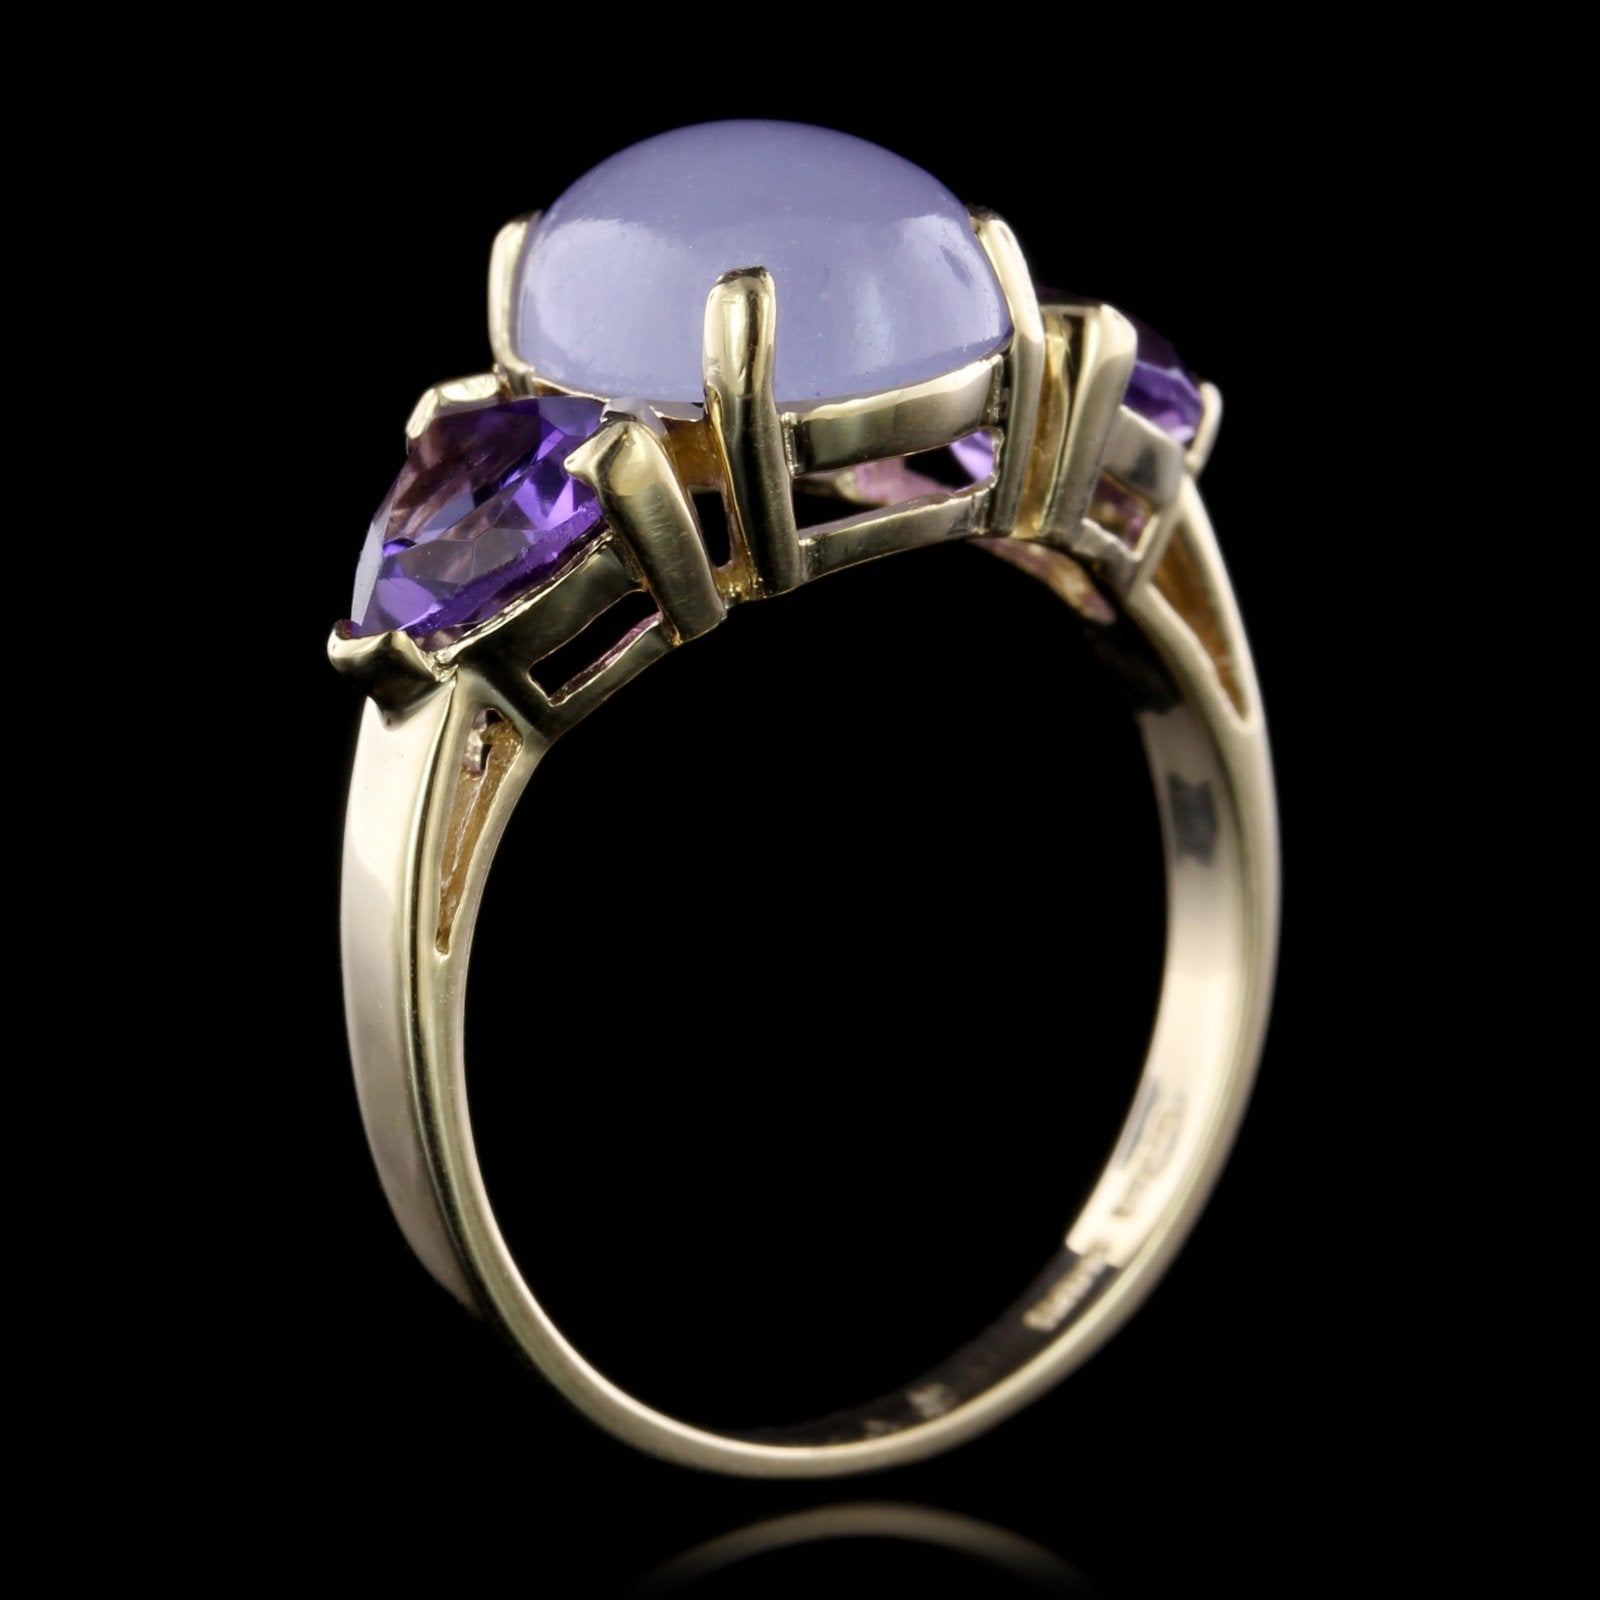 14K Yellow Gold Lavender Jadeite and Amethyst Ring